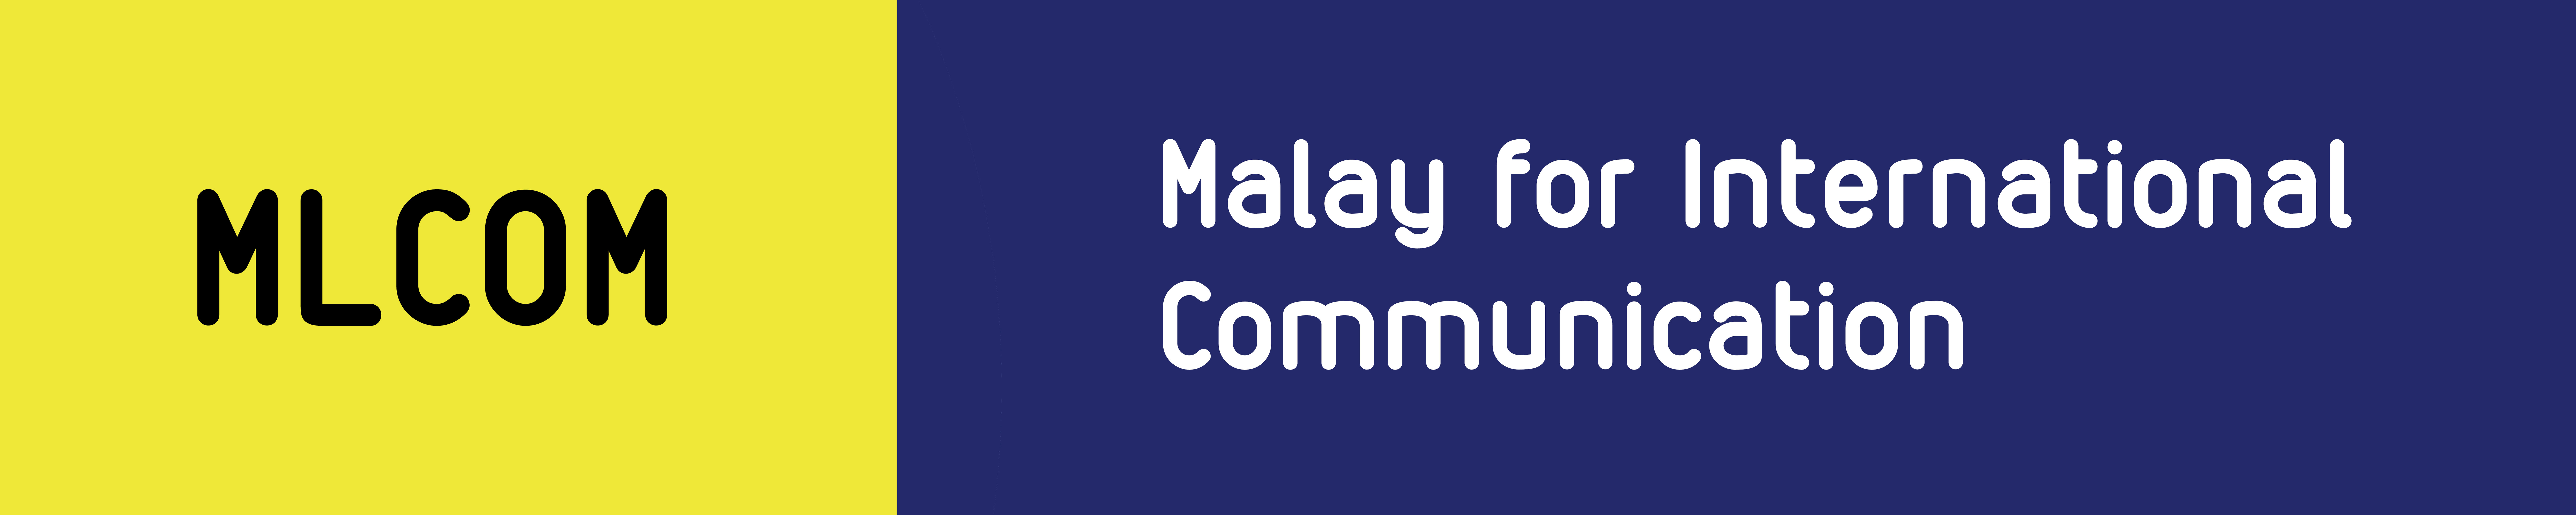 Bachelor Of Arts (Hons.) In Malay For International Communication